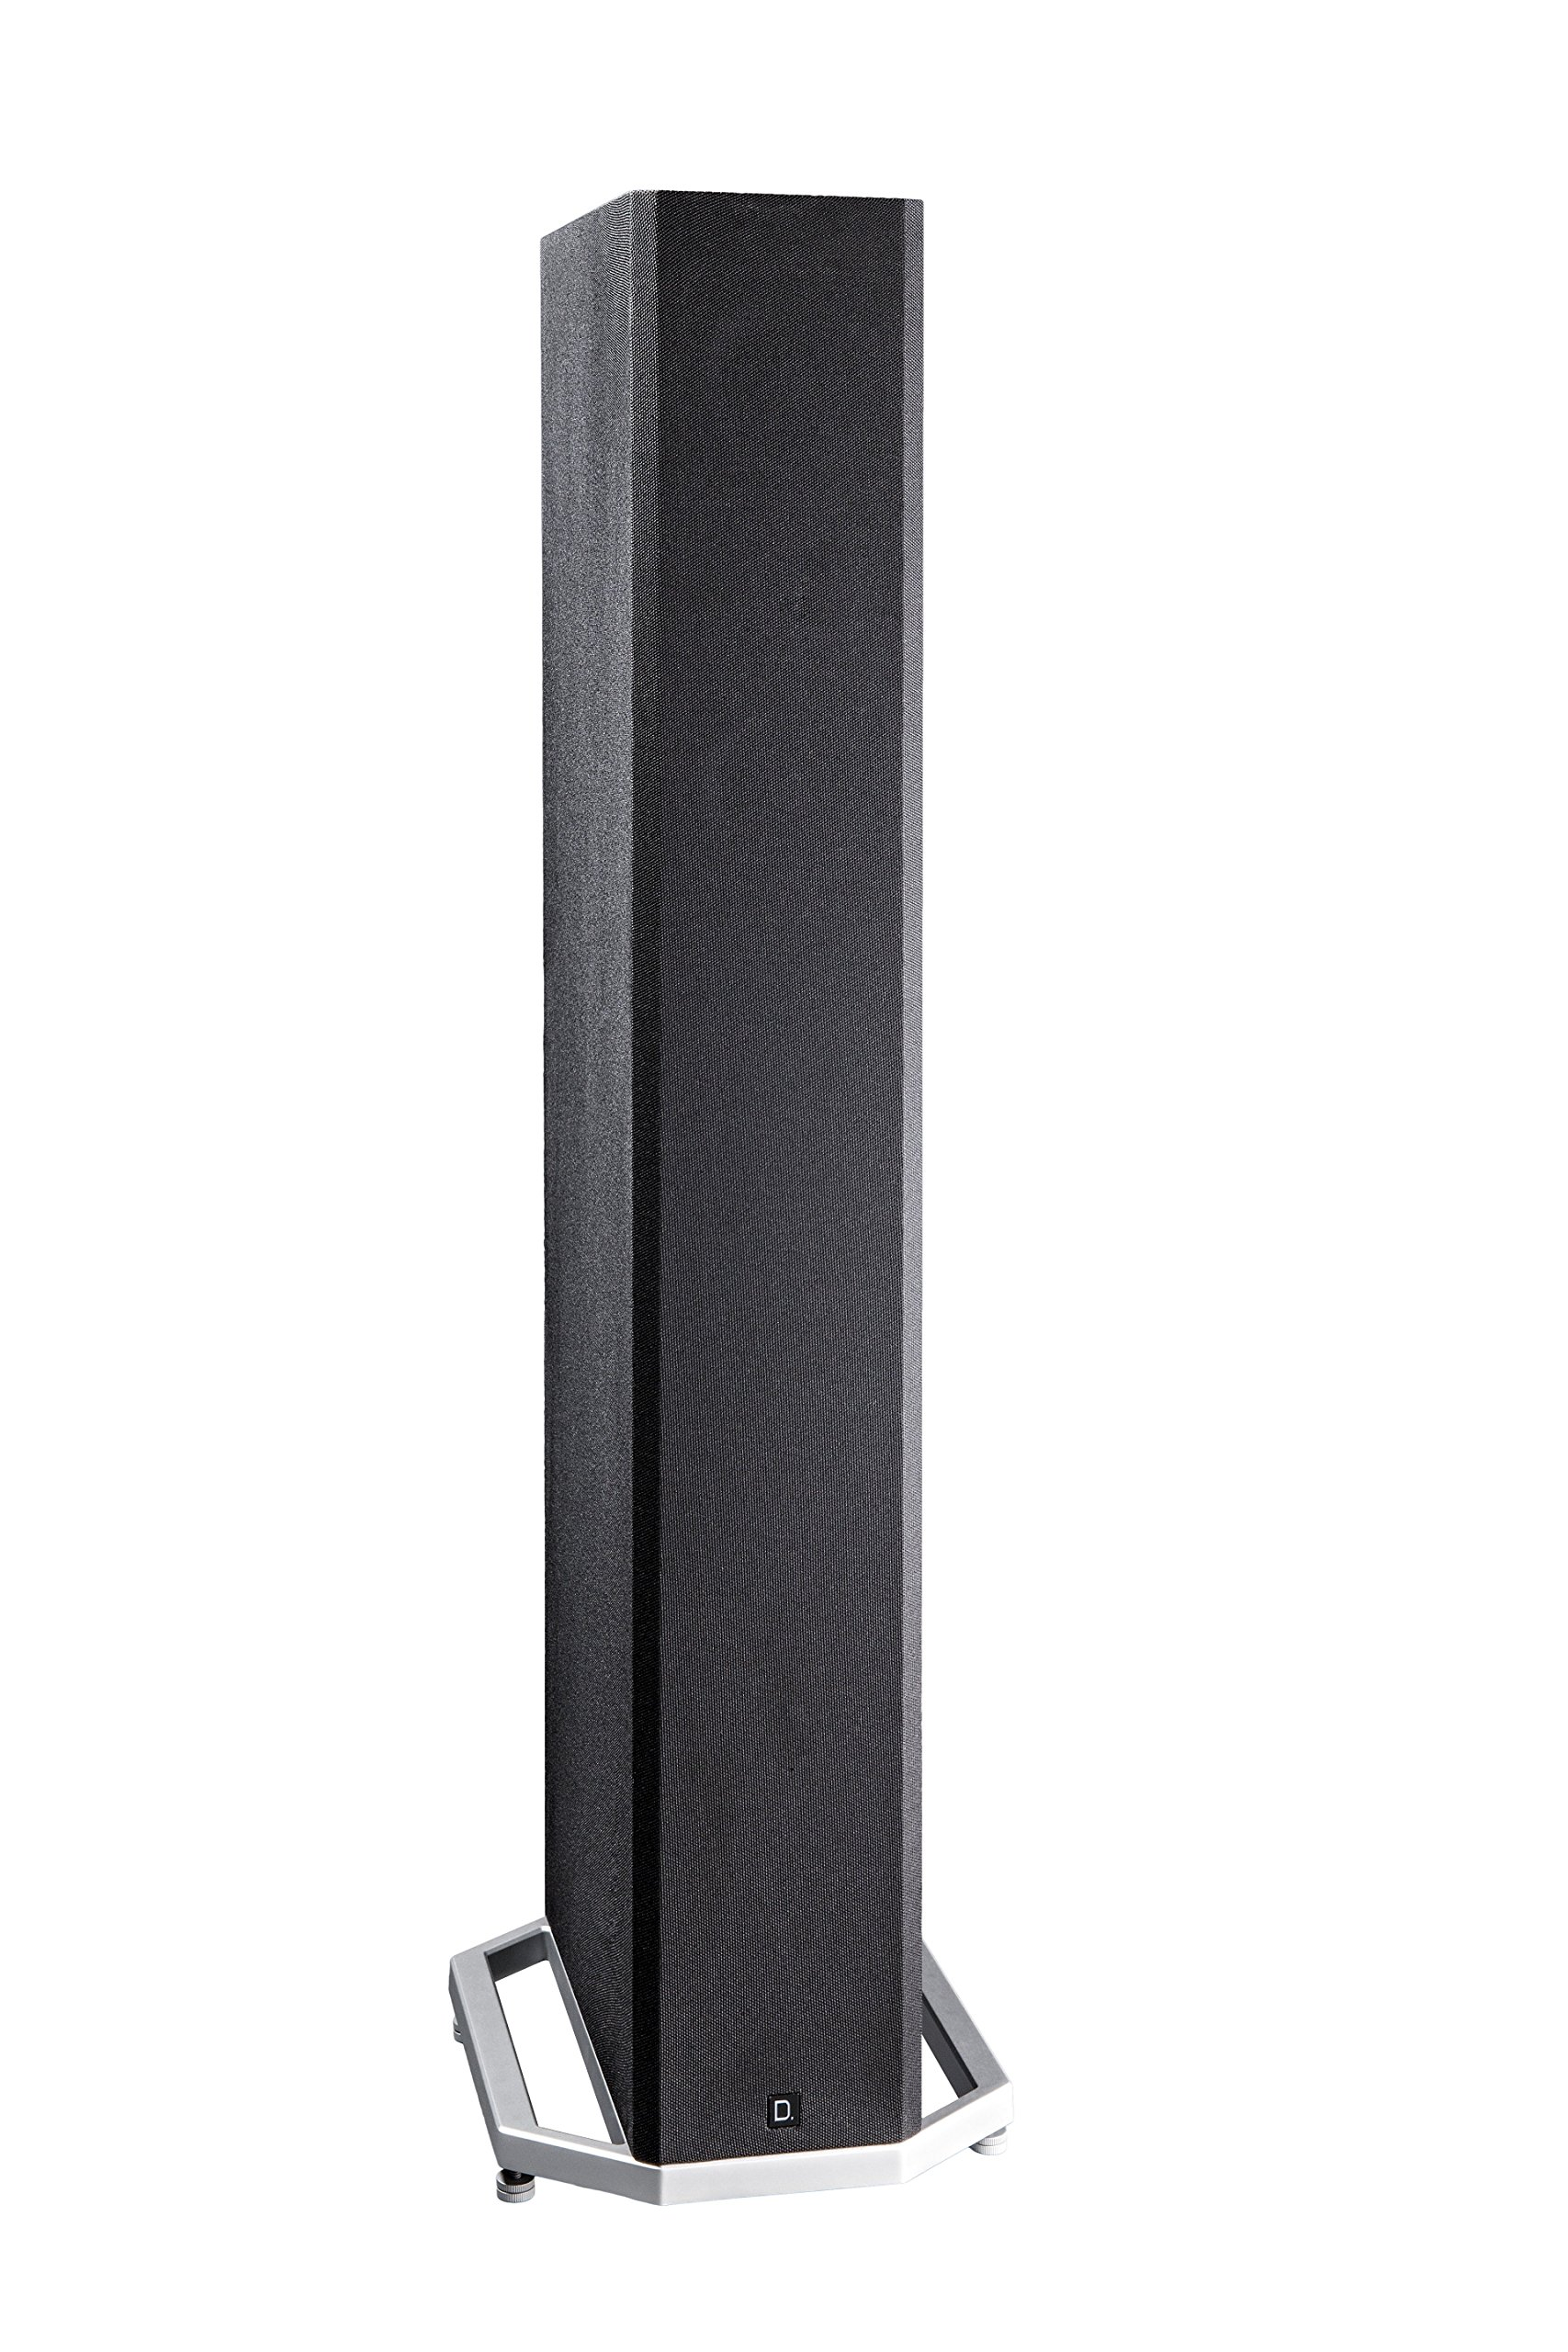 "Definitive Technology BP9040 High-Performance Tower Speaker with Integrated 8"" Powered Subwoofer - (single speaker) by Definitive Technology"